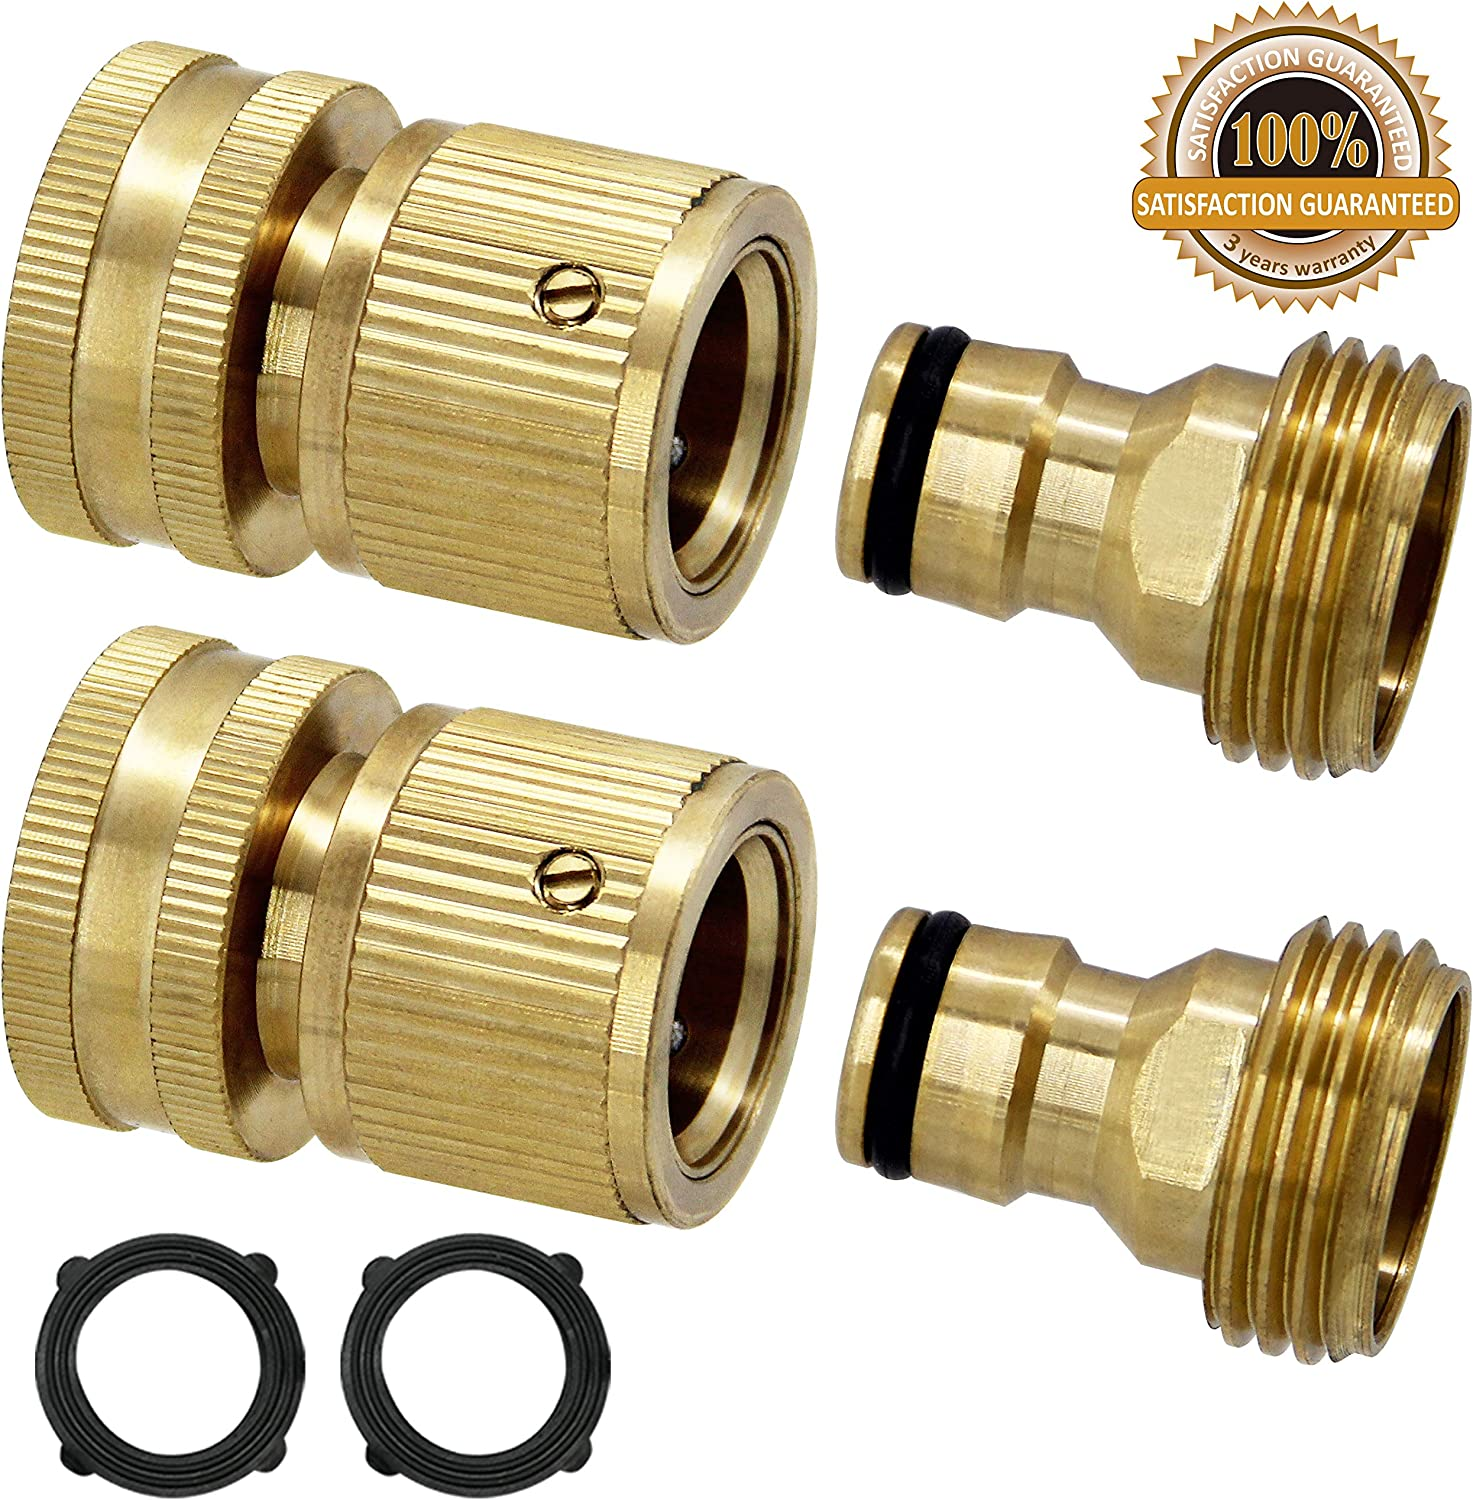 Twinkle Star Garden Hose Quick Connect Water Hose Fitting, 3/4 Inches Brass Female and Male Connector, 2 Set